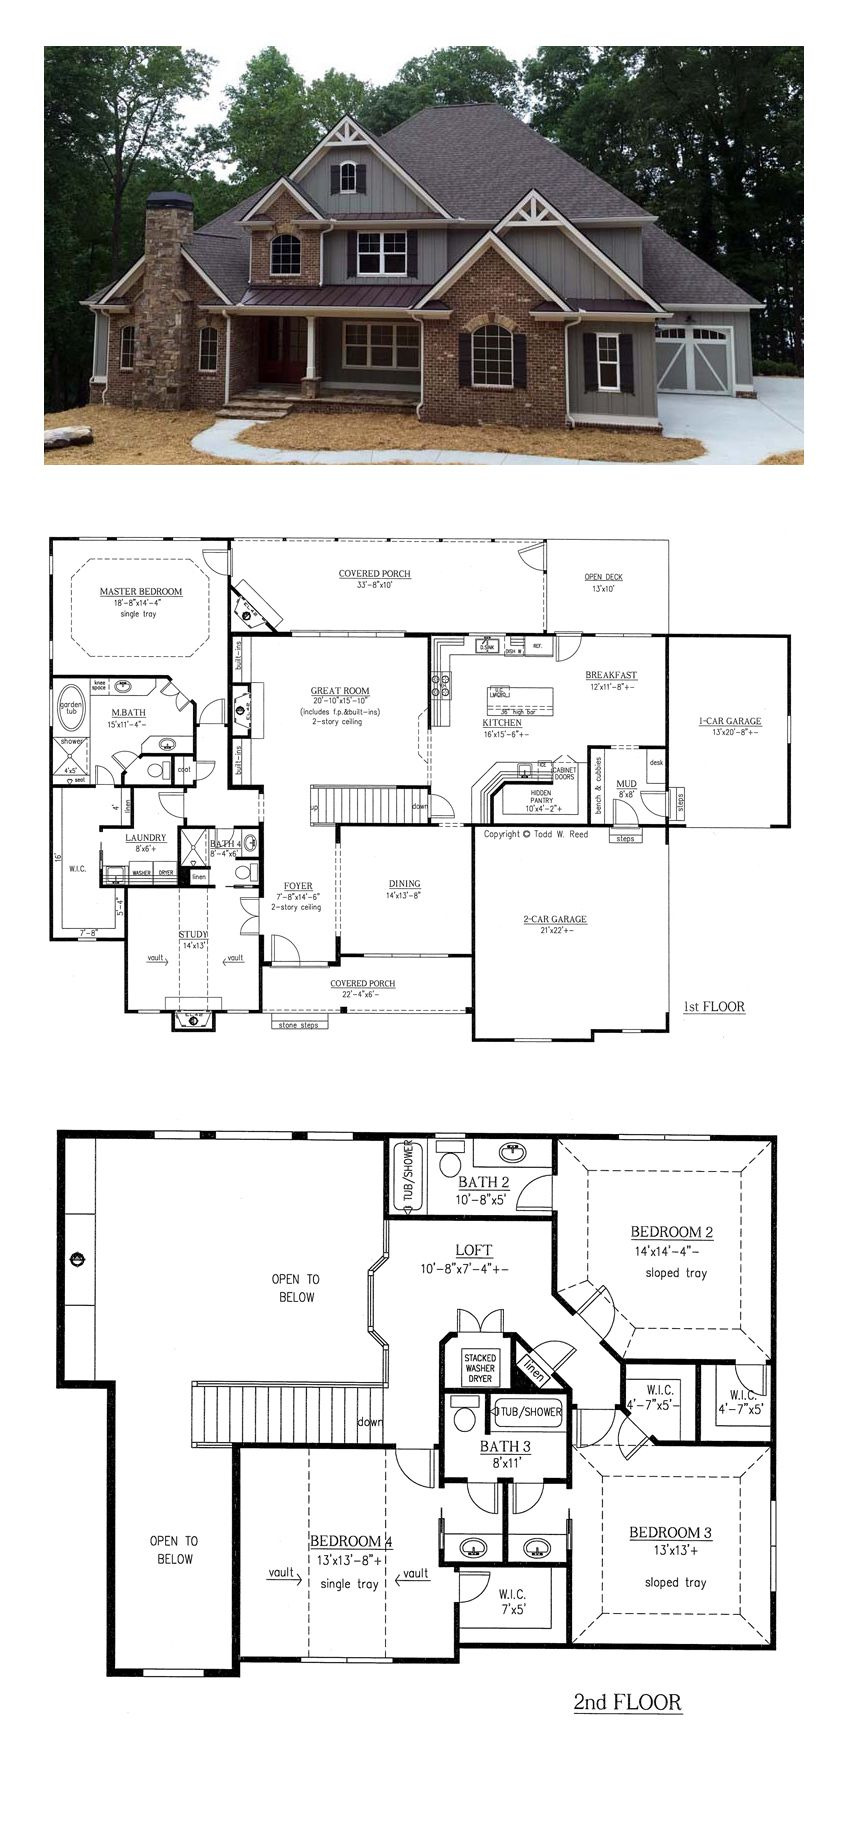 Houses and House Plans Lovely Traditional Style House Plan with 4 Bed 4 Bath 3 Car